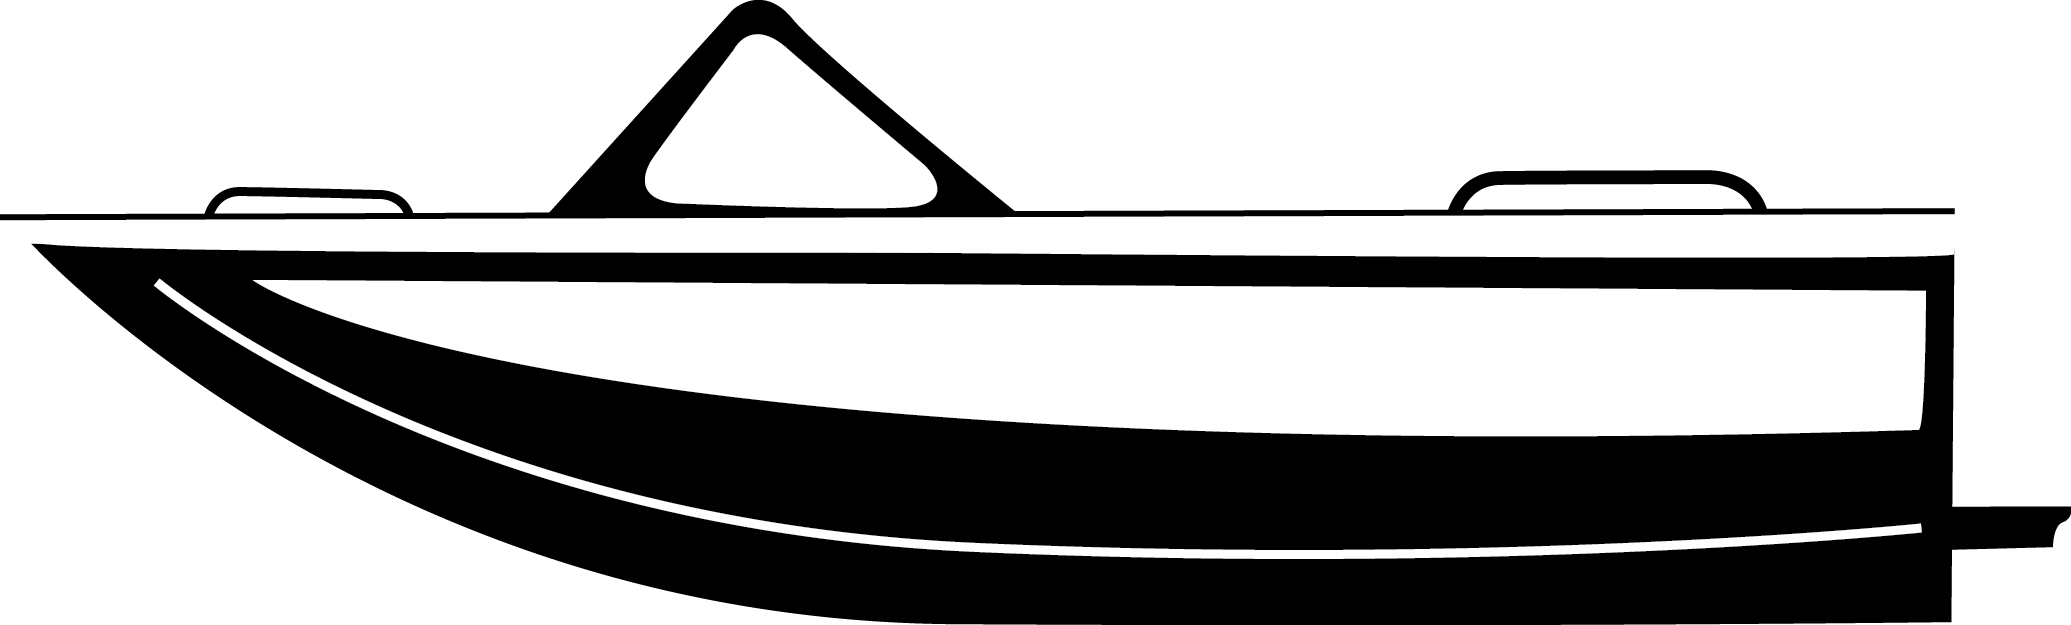 clipart freeuse library Weldcraft marine jet. Boats clipart river boat